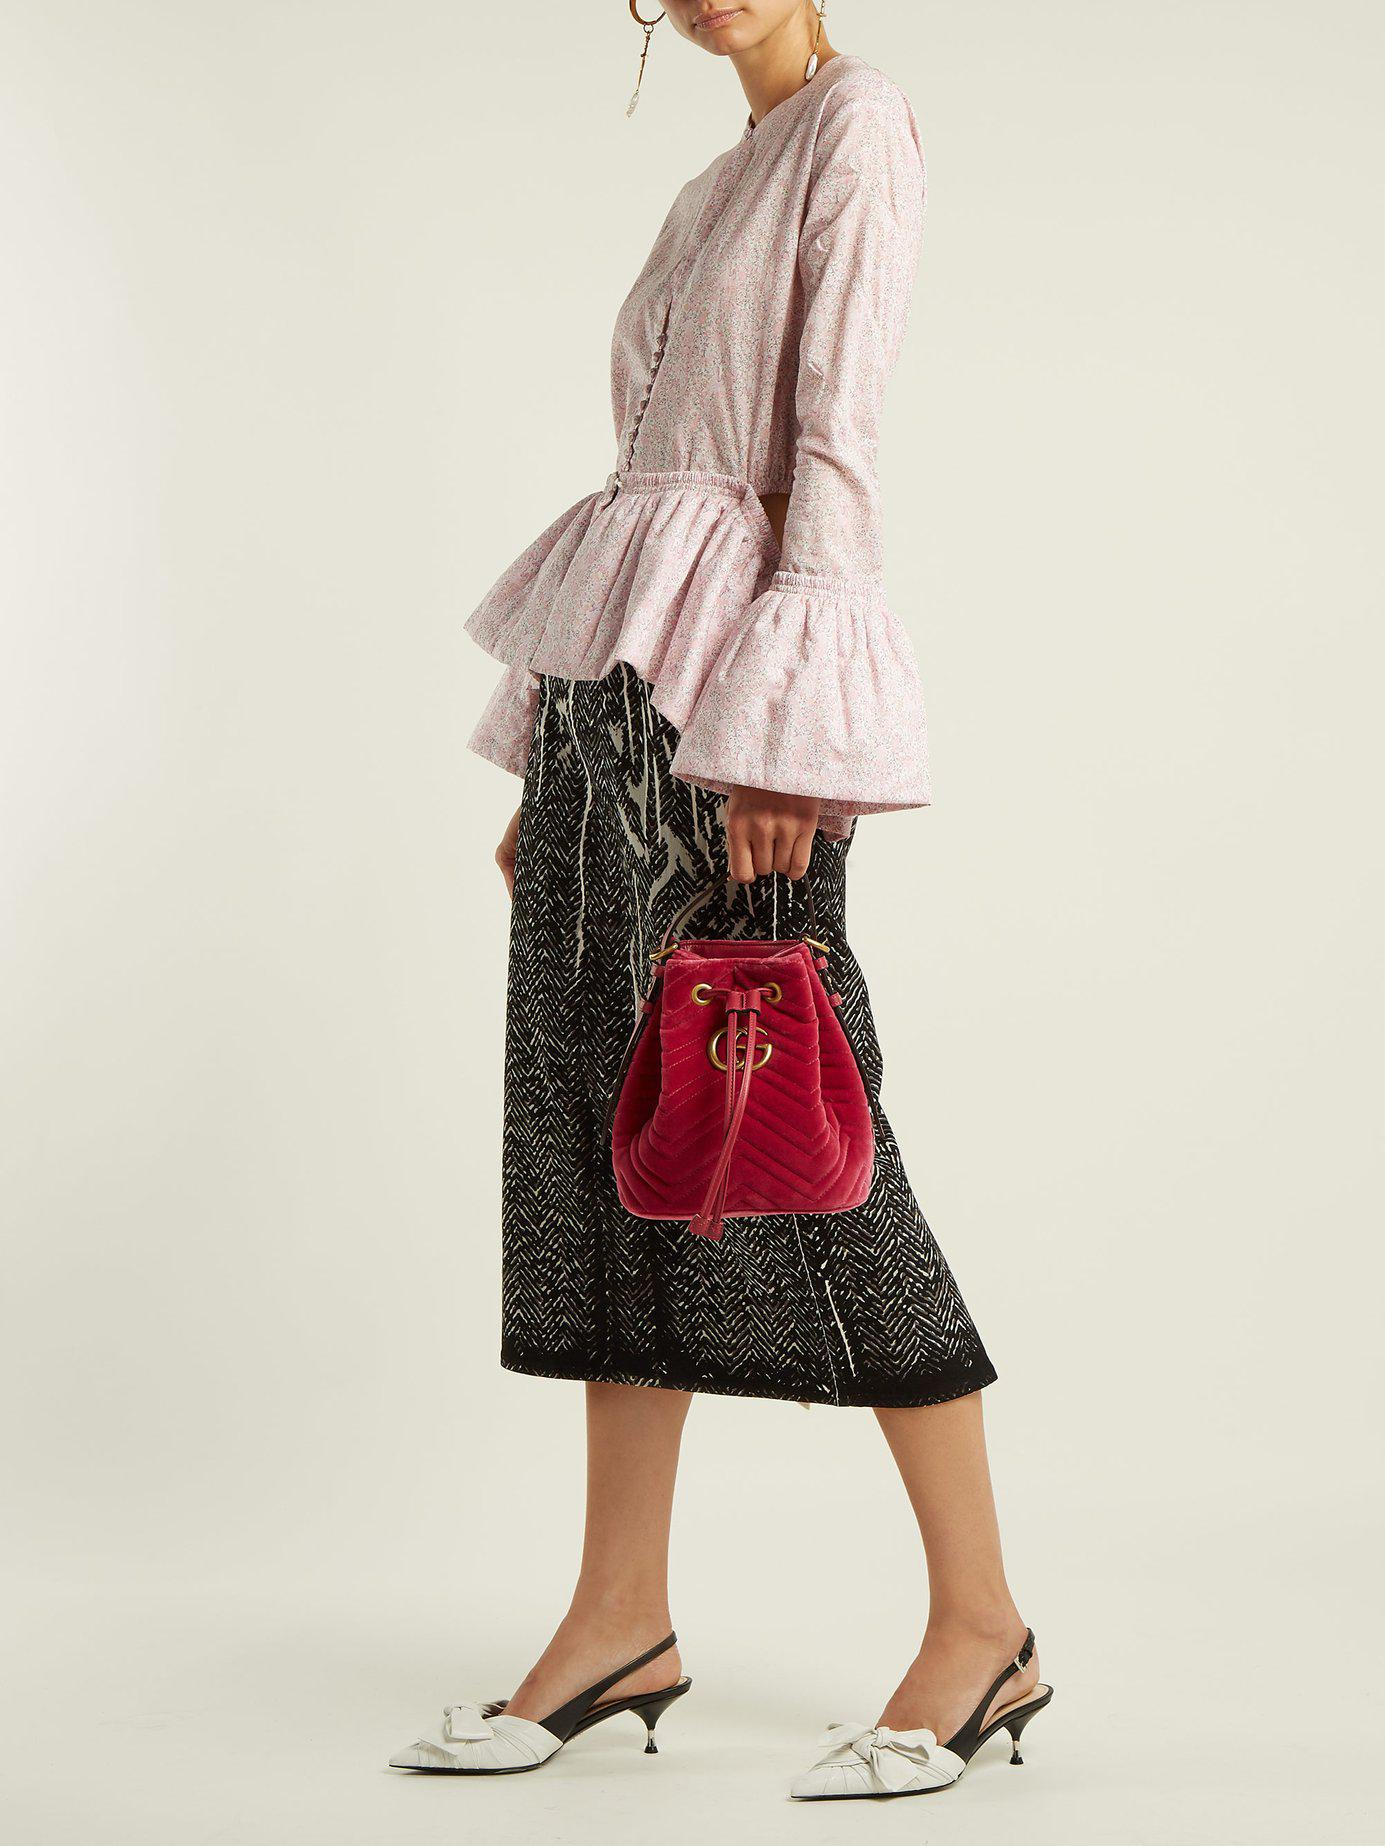 Lyst - Gucci Gg Marmont Quilted Velvet Drawstring Bucket Bag in Pink da2b14490dc65